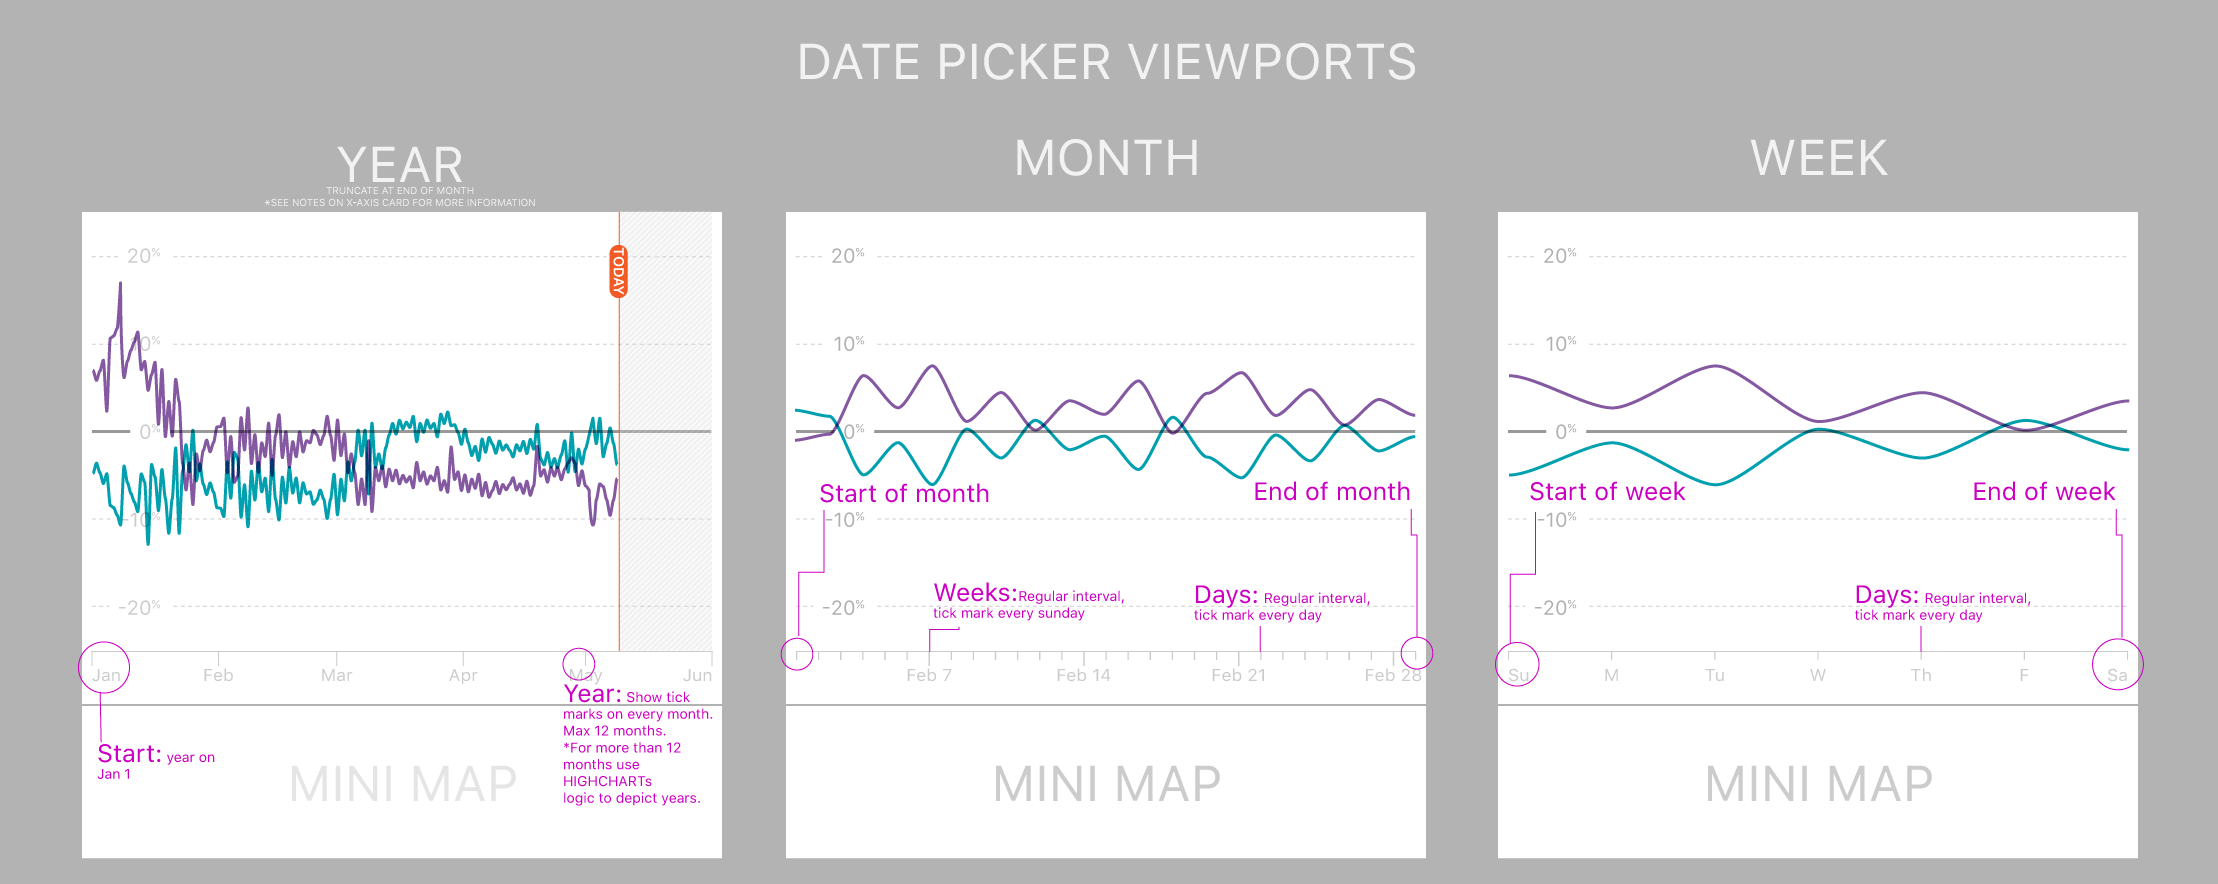 Date picker viewports mock for developers